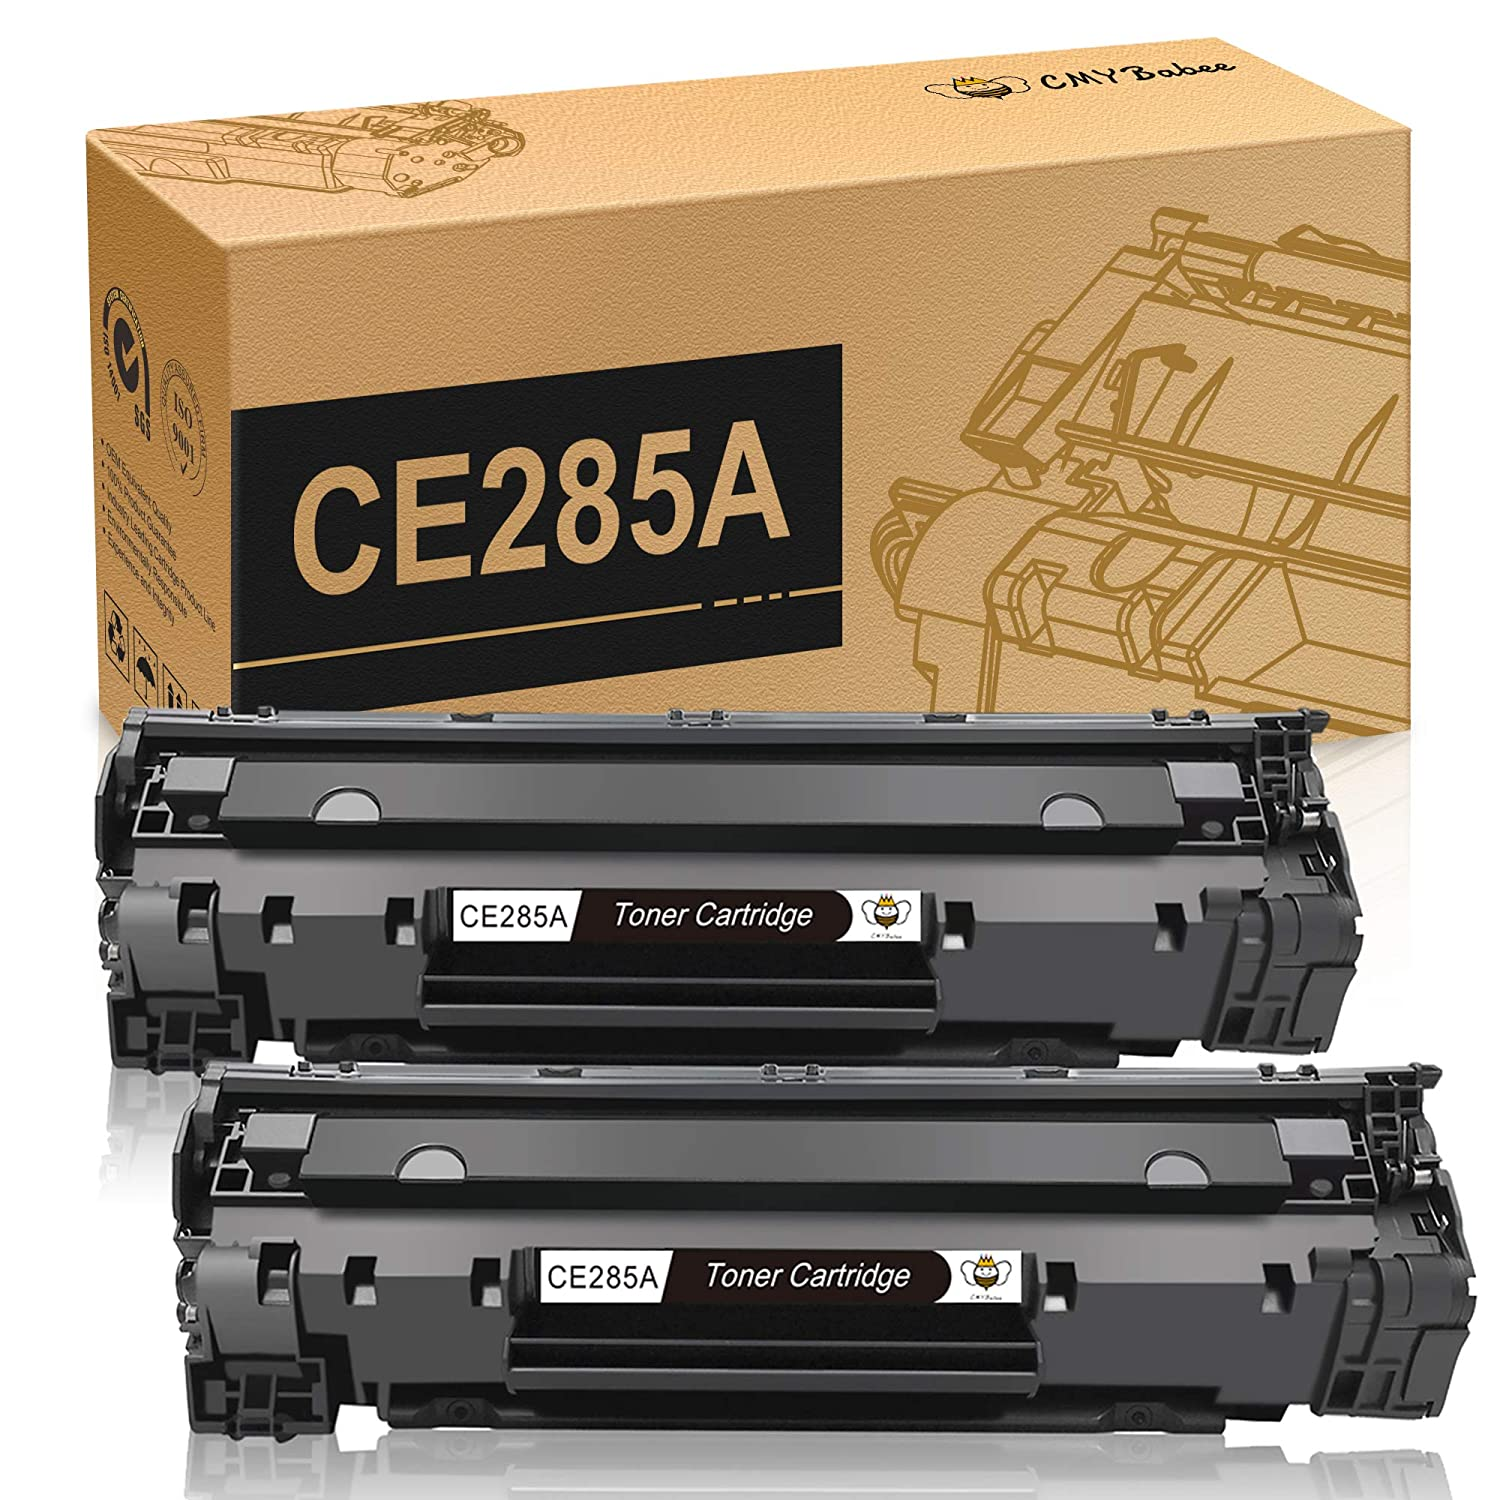 Amazon.com: CE285A 85A Black Laserjet Toner Cartridge CMYBabee 2 Pack  Replacement Toner Compatible for Canon 125 and HP Laserjet Pro M1132 M1210  M1212NF ...